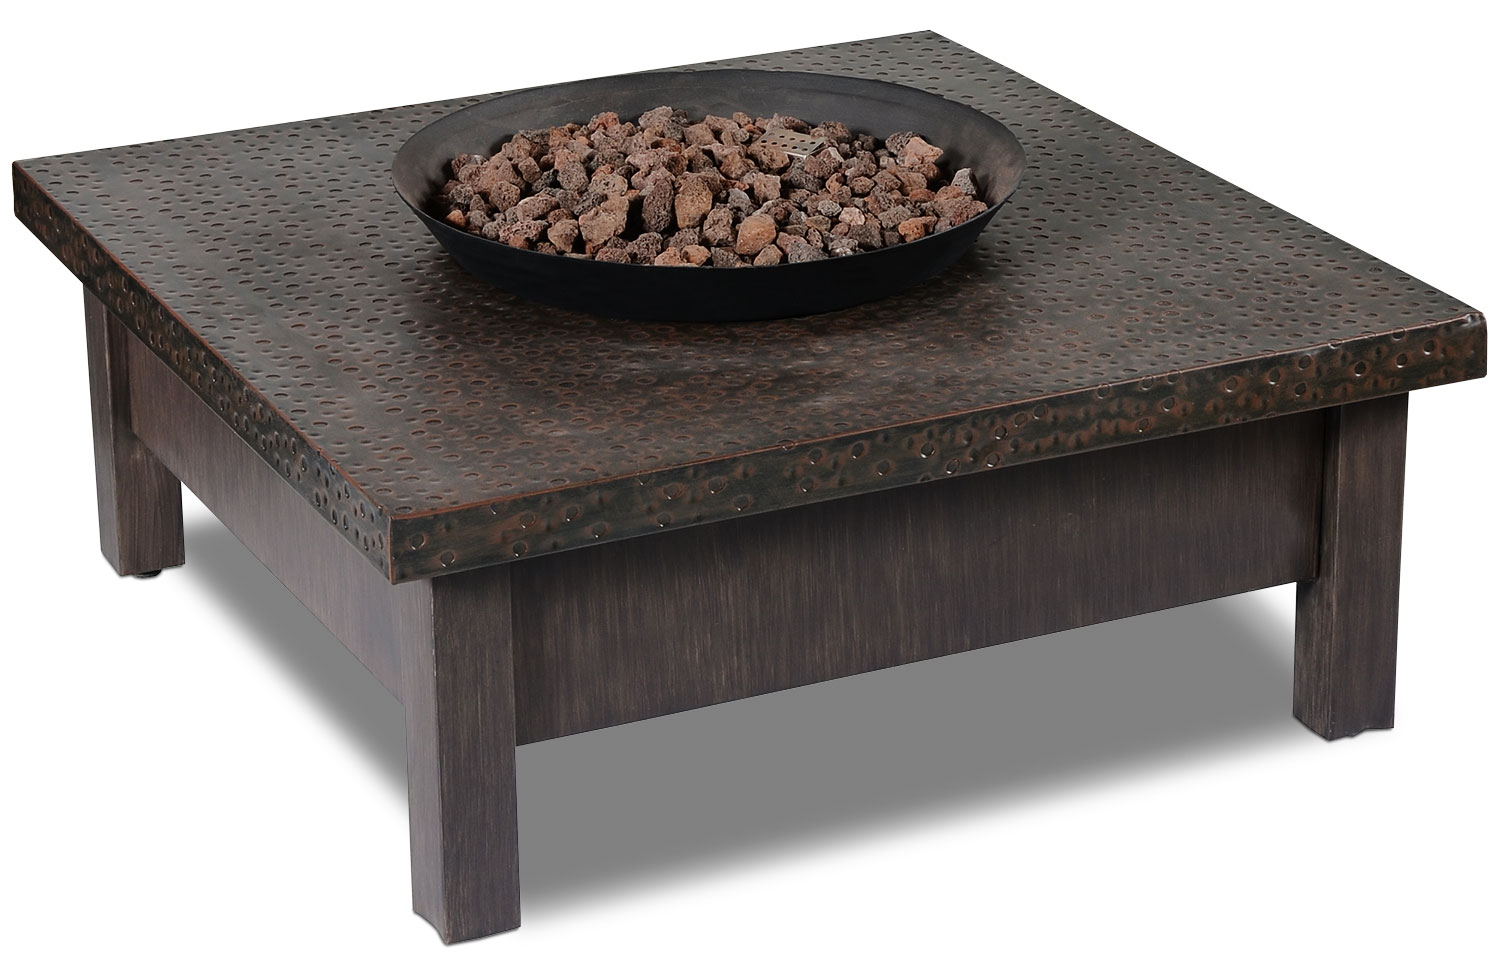 Outdoor Furniture - Larkspur 50,000-BTU Fire Table